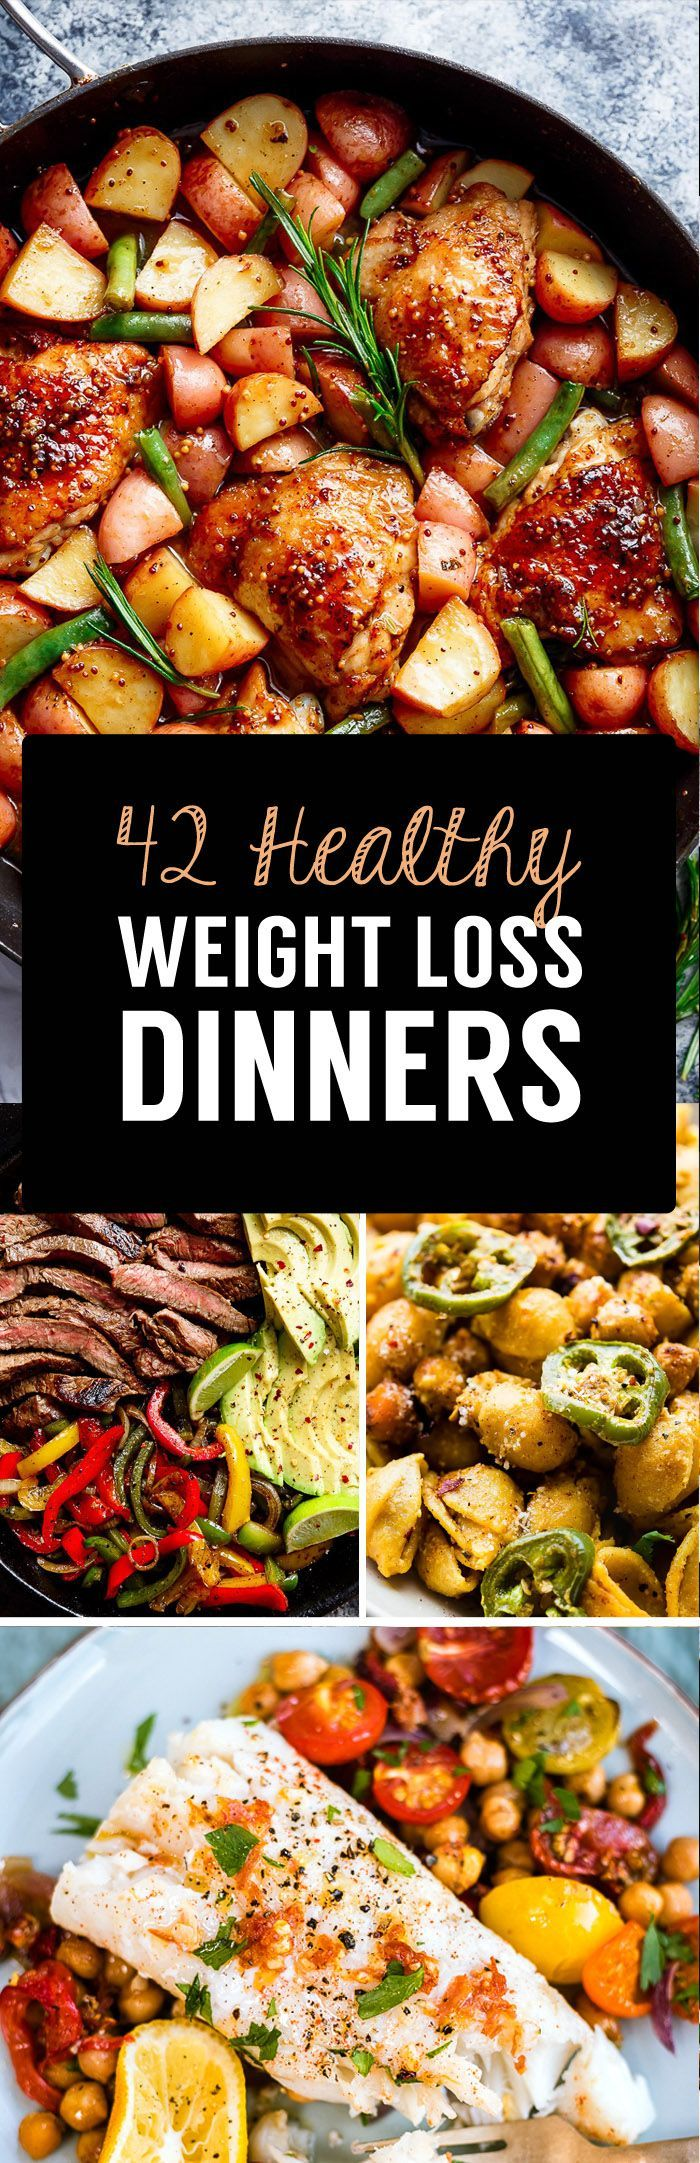 42 Weight Loss Dinner Recipes That Will Help You Shrink Belly Fat Healthy WeightlossLow RecipesHealthy MealsHeathy